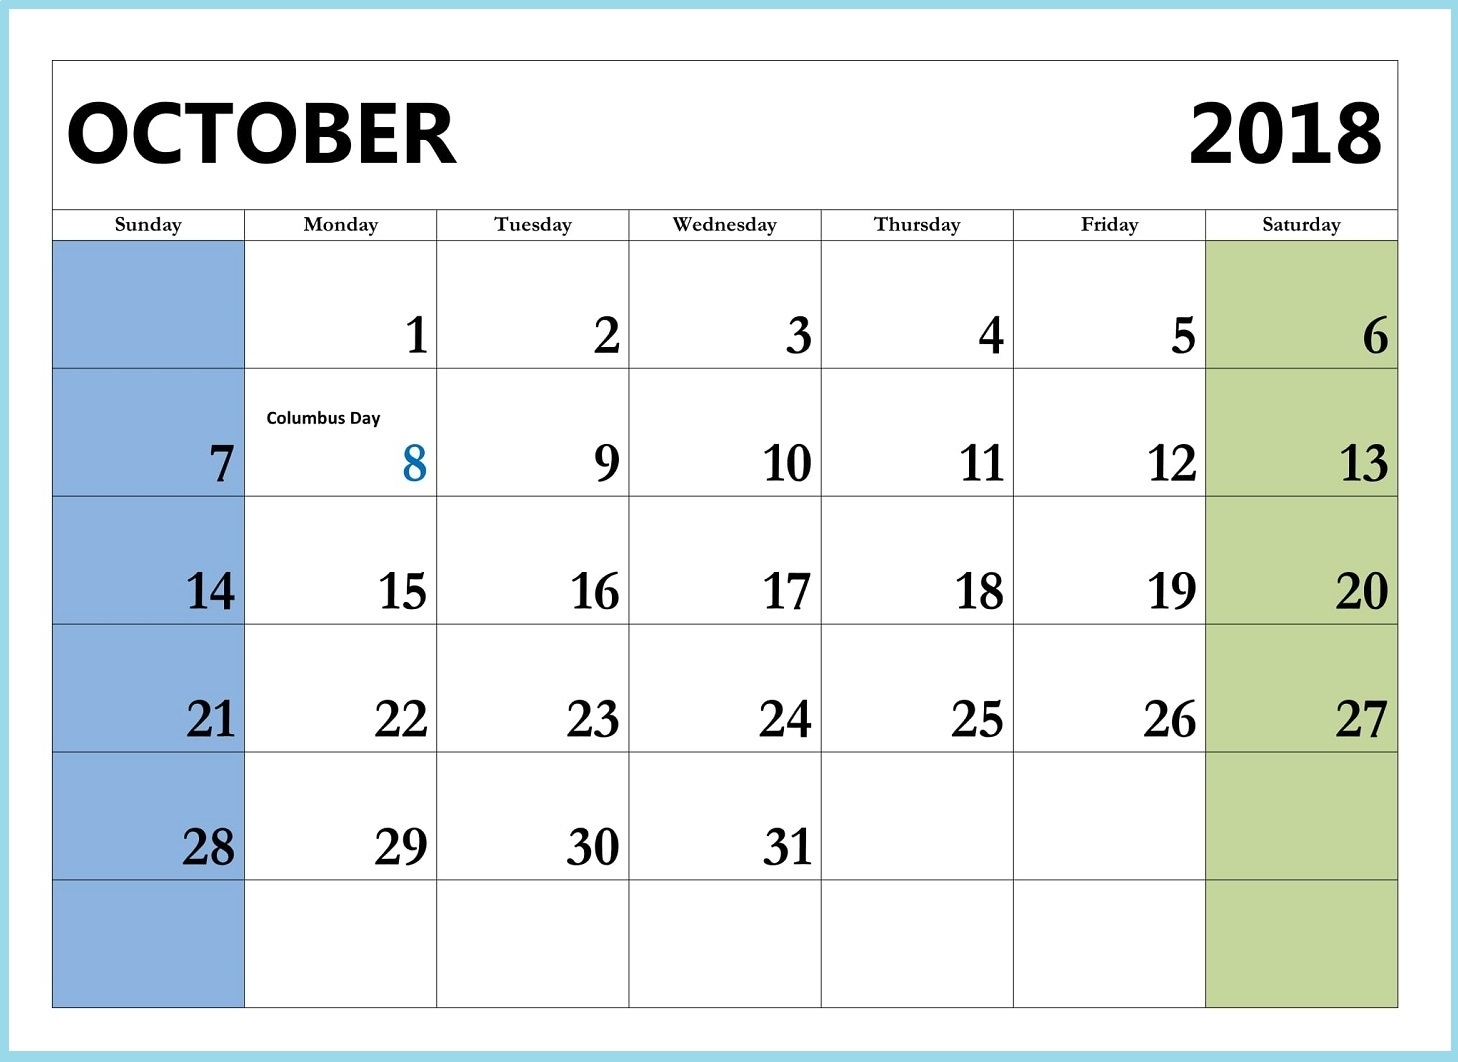 cute october 2018 calendar free printable business calendar templates October 2018 Calendar Free erdferdf